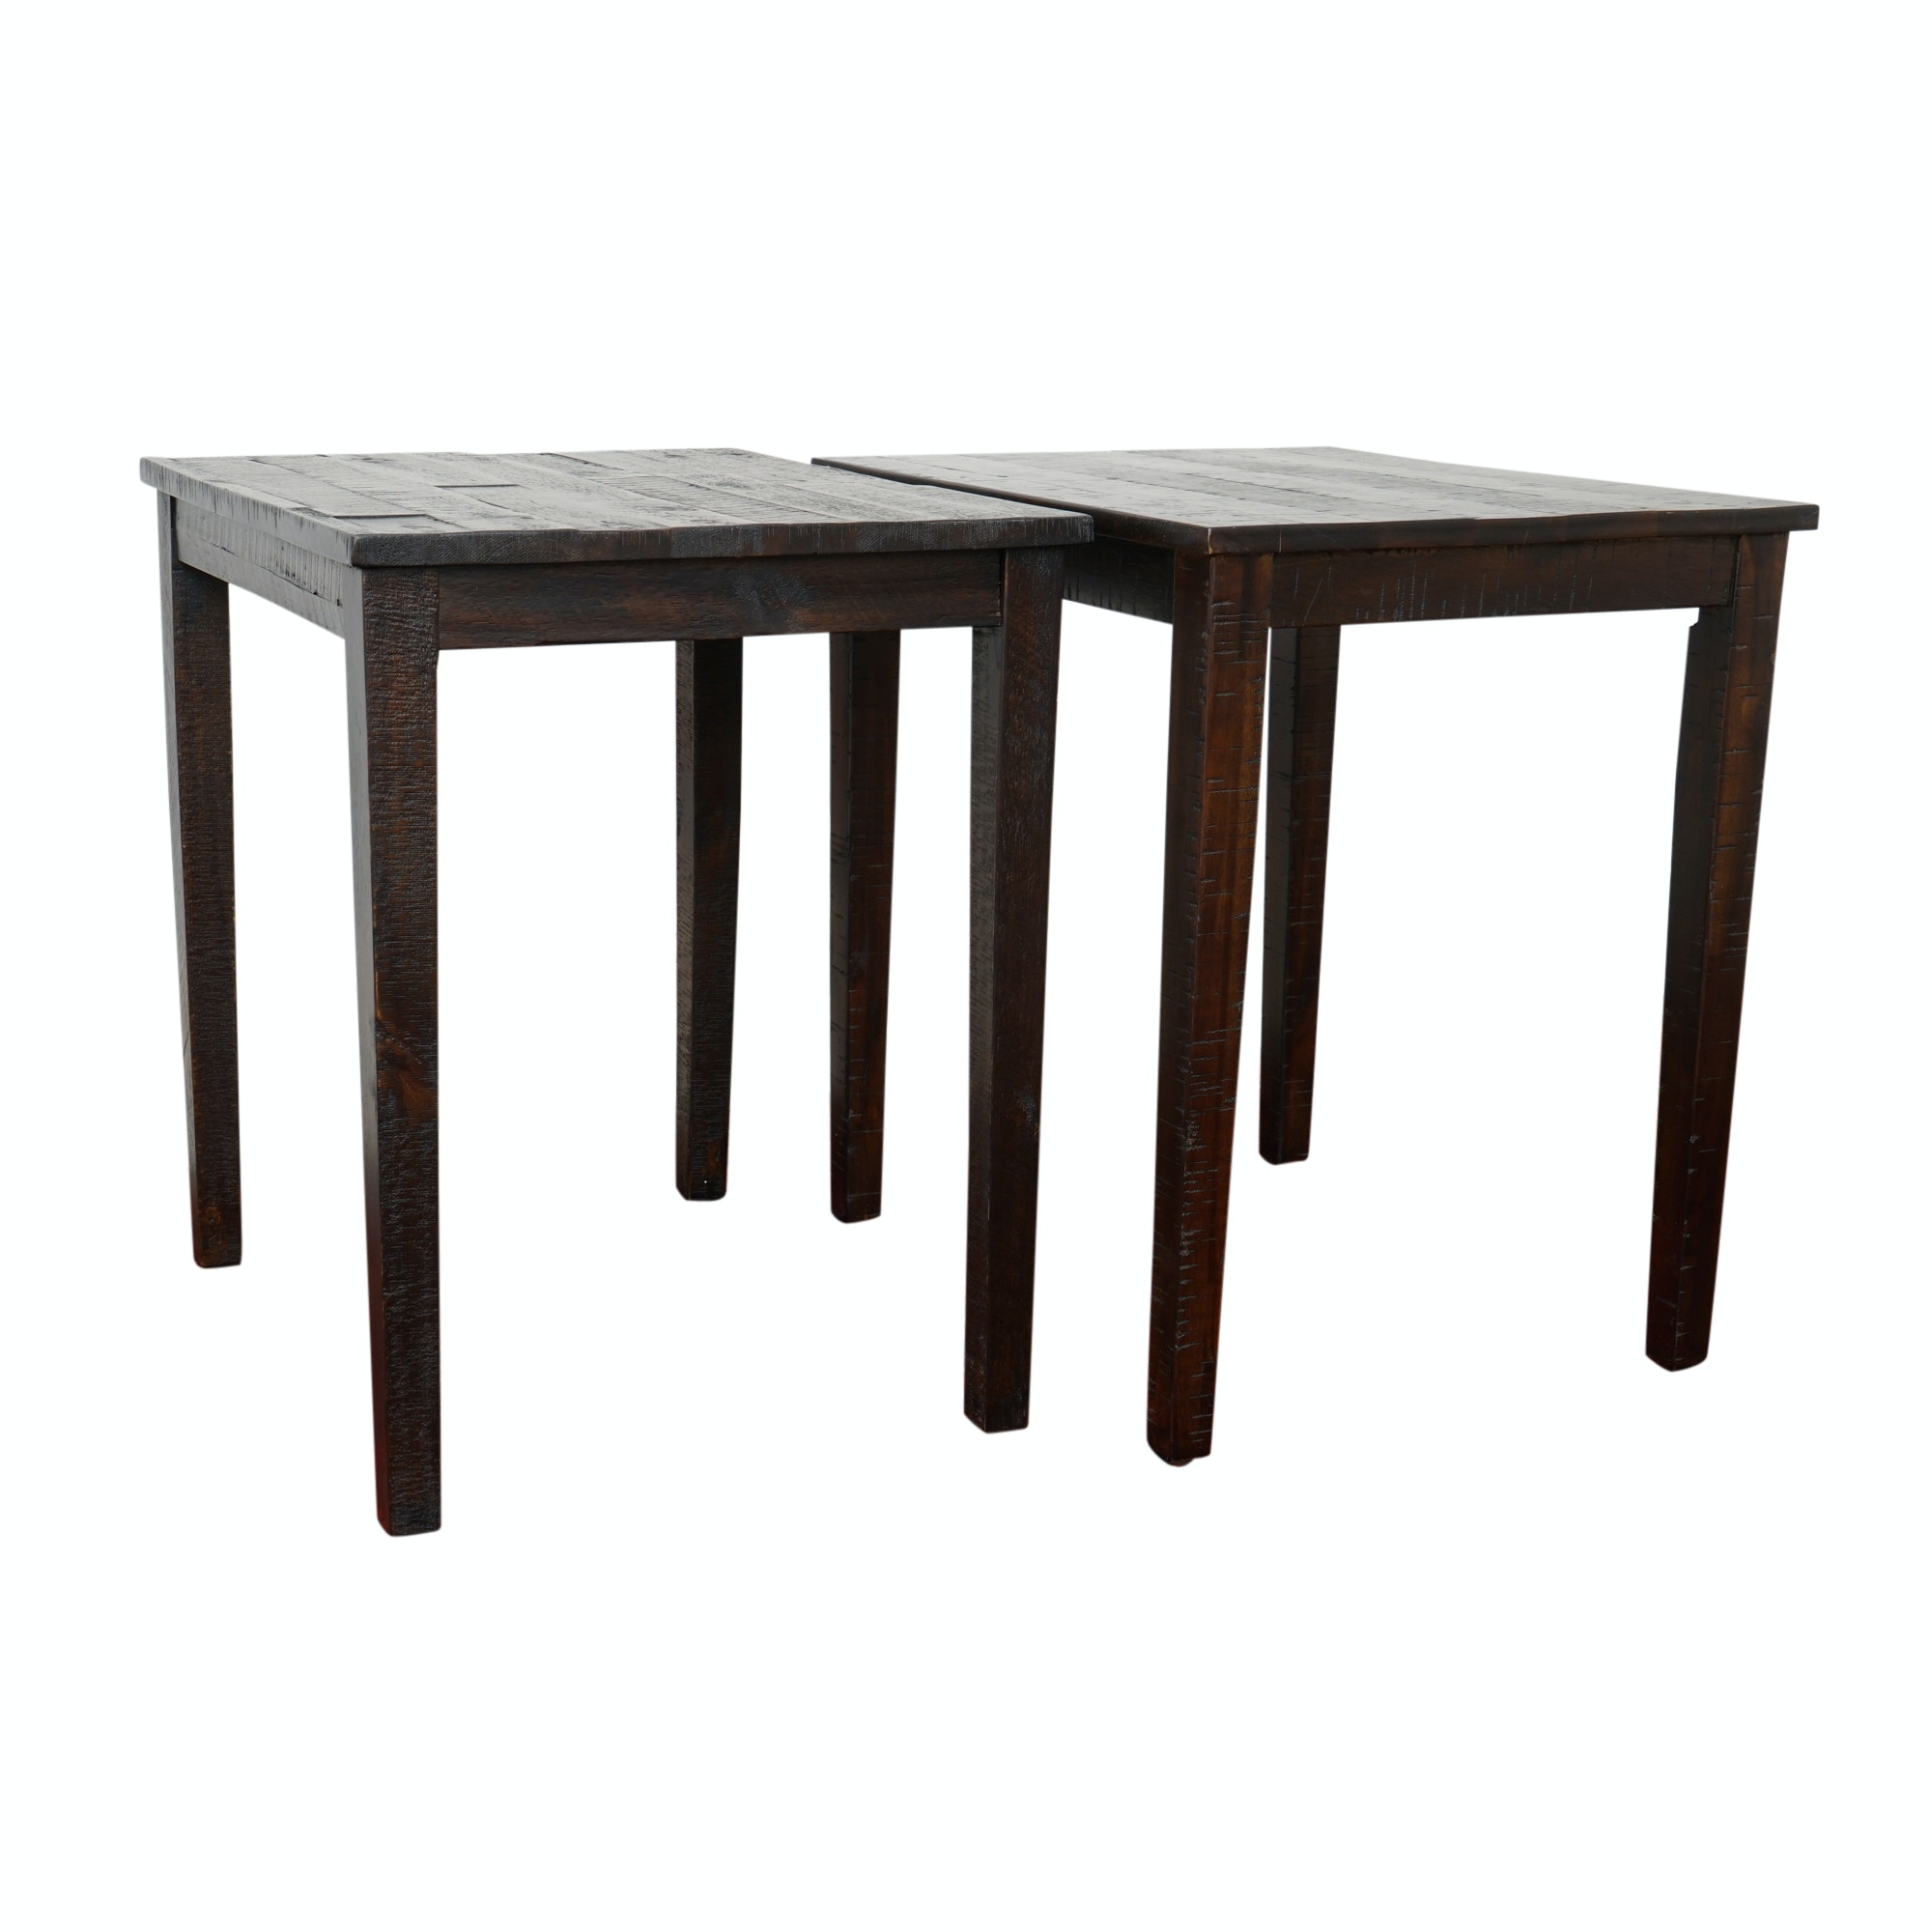 Three Rustic Style Side Tables